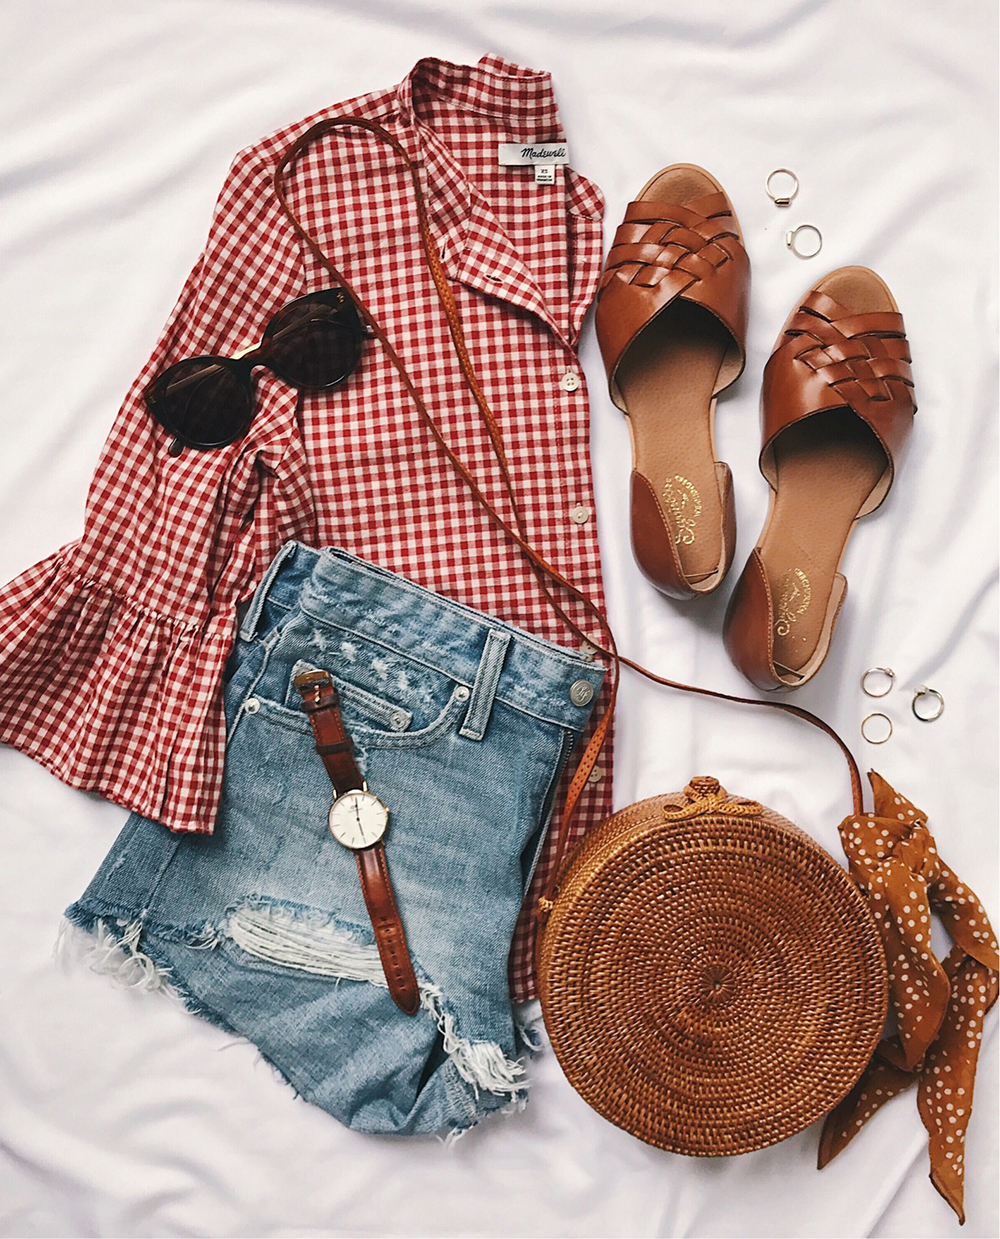 livvyland-blog-best-button-up-shirts-gingham-madewell-circle-wicker-straw-bag-1